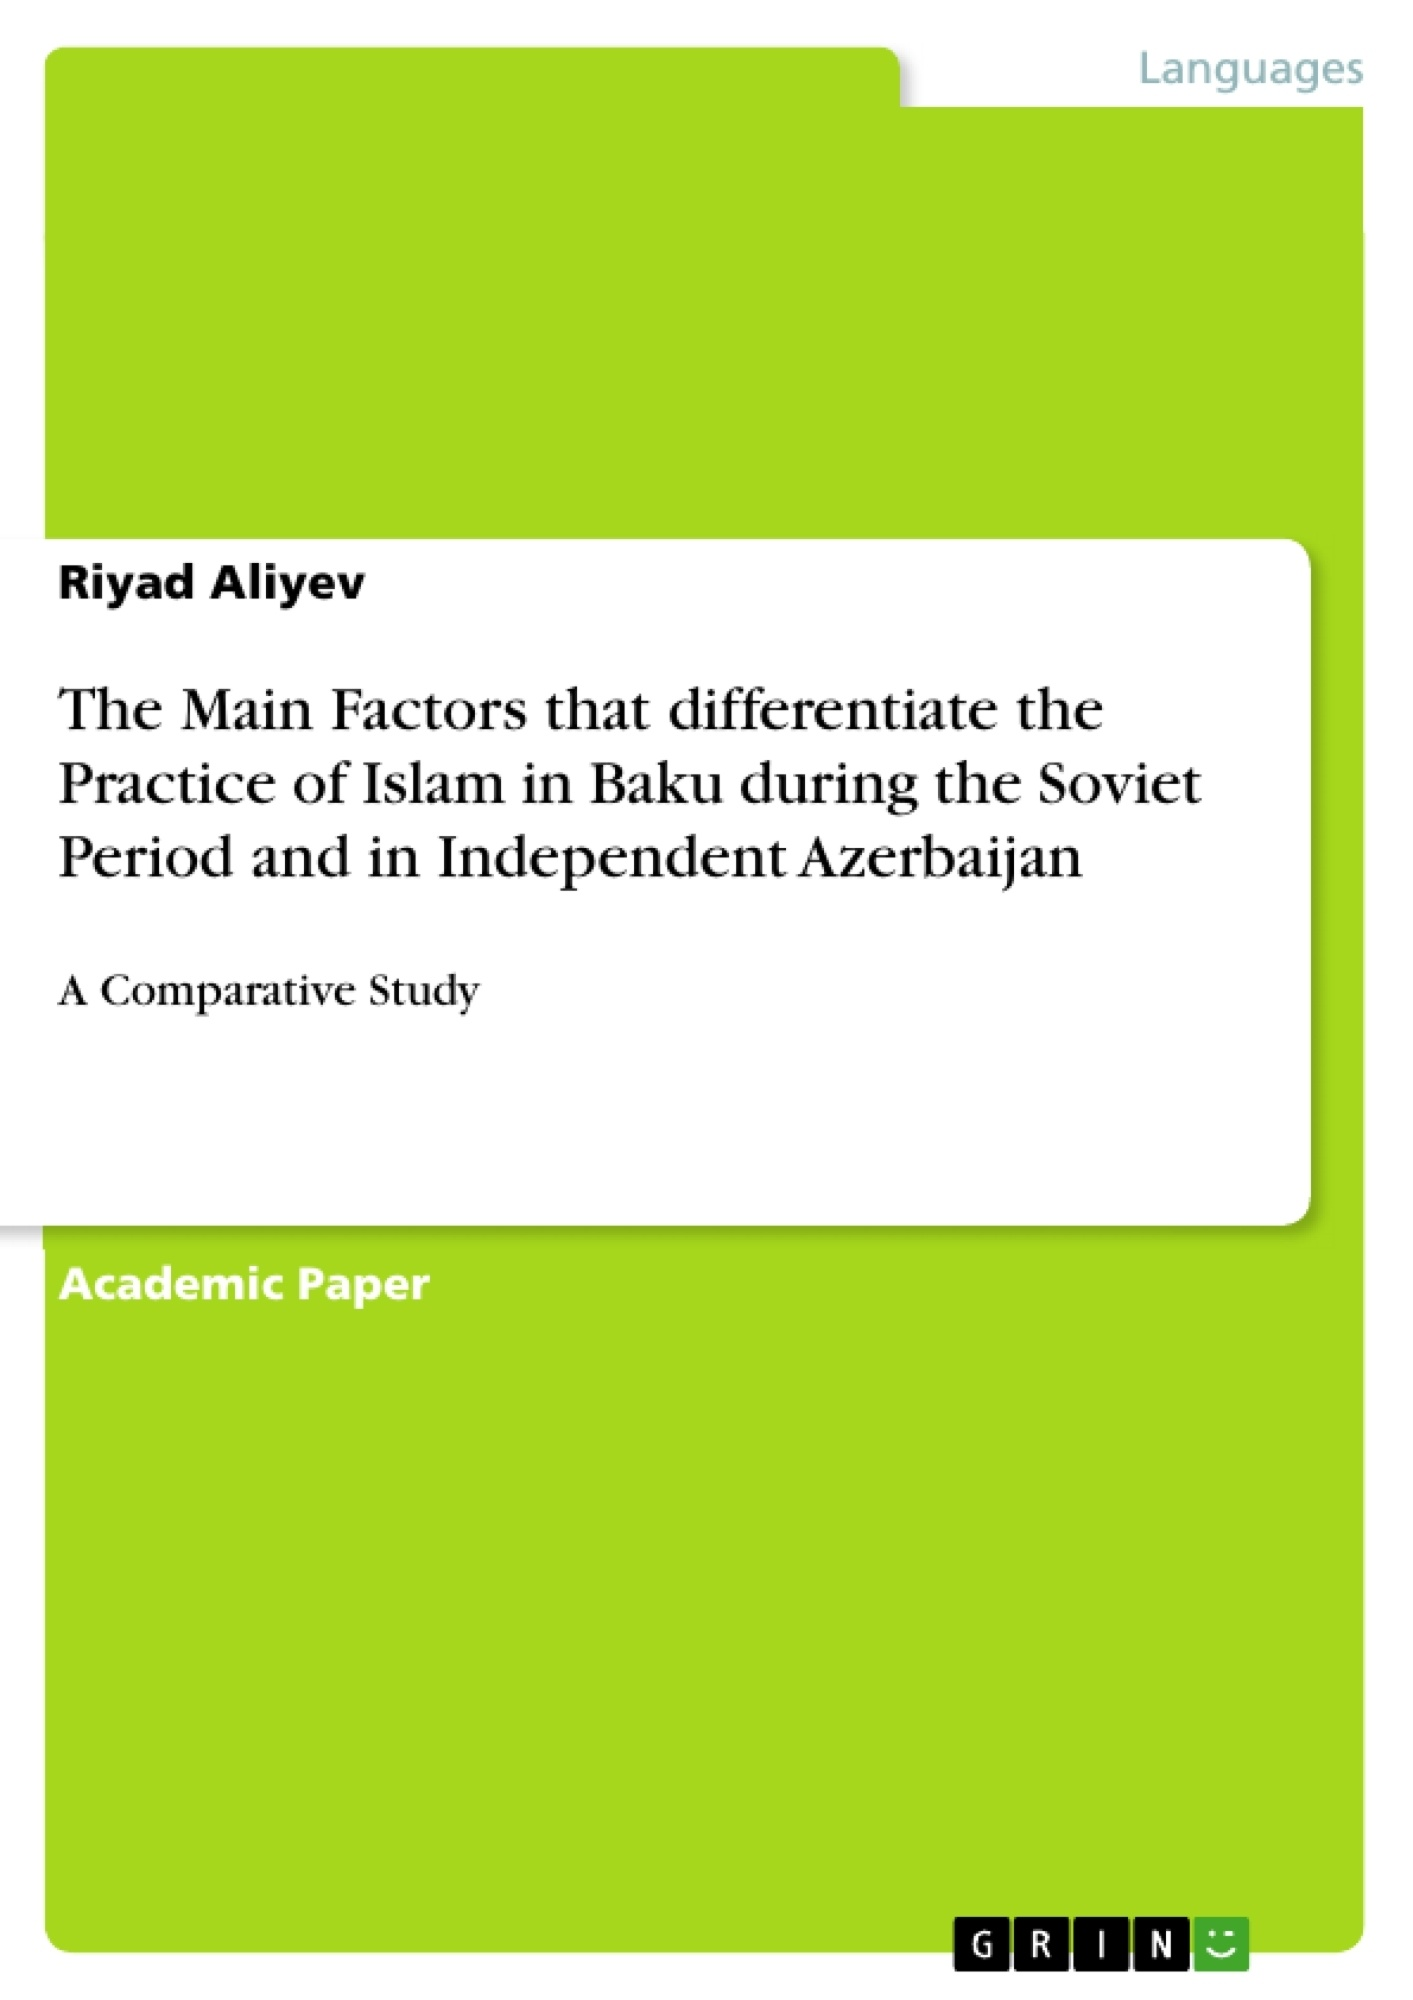 Title: The Main Factors that differentiate the Practice of Islam in Baku during the Soviet Period and in Independent Azerbaijan